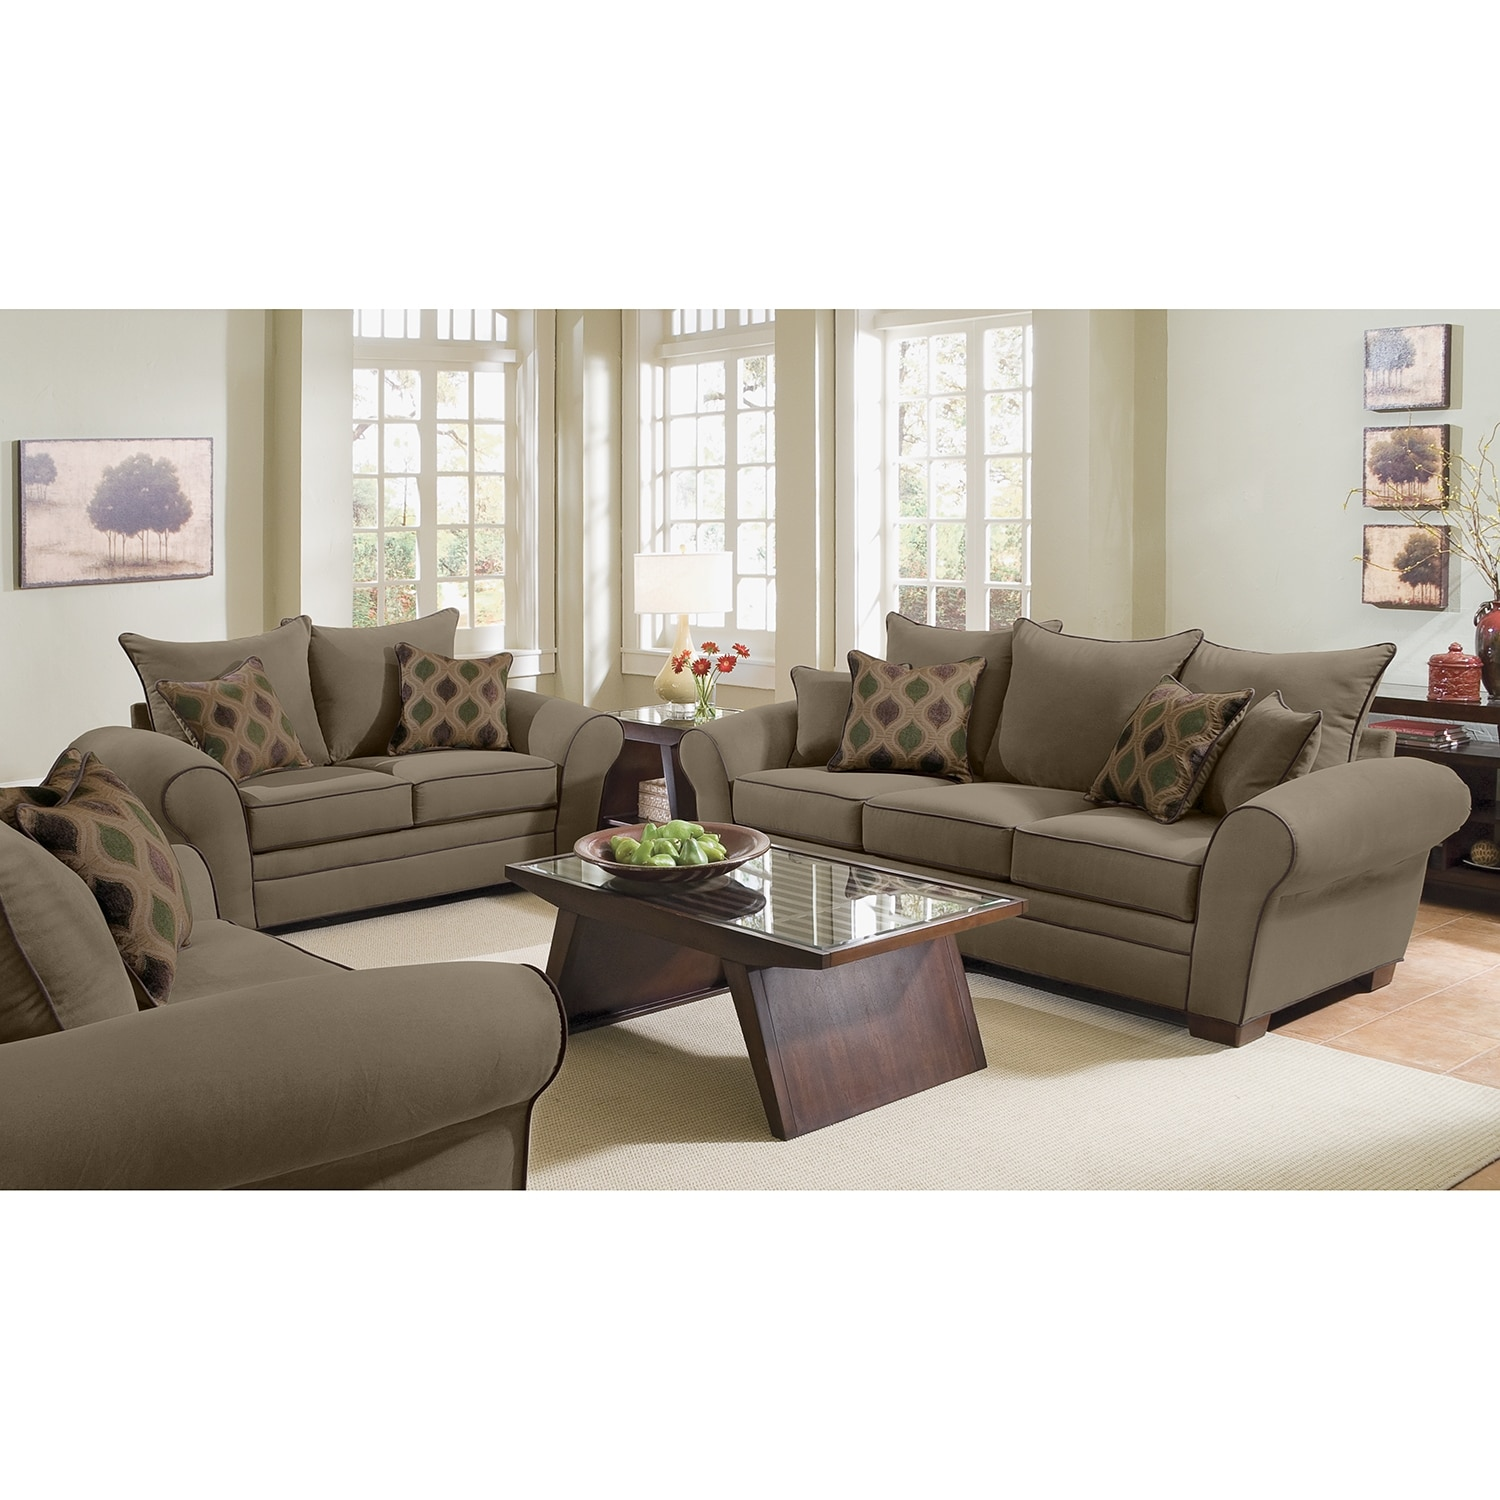 Rendezvous 2 pc living room value city furniture for The living room furniture